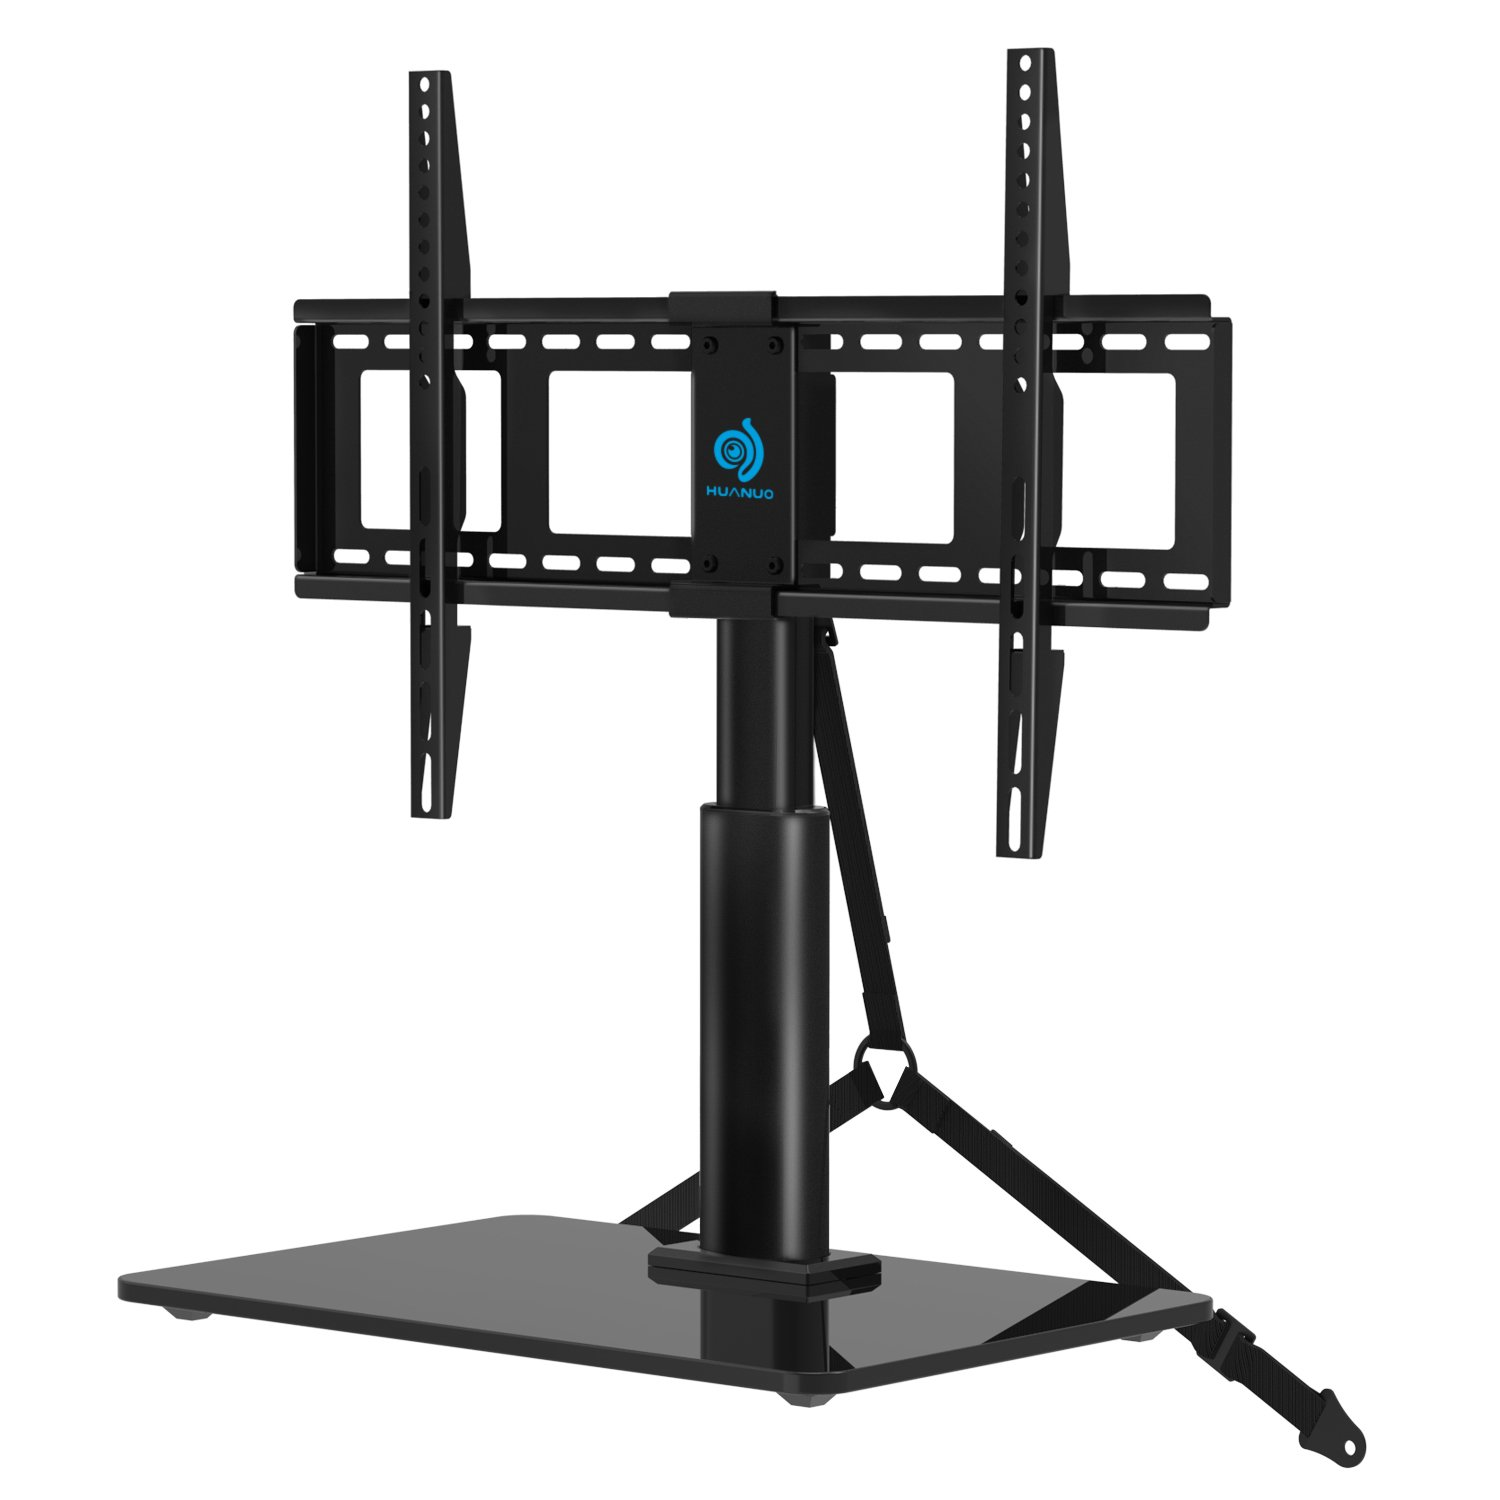 HUANUO HN-TVS03 Universal Adjustable Table Top TV Stands for 32 to 60 Inch Televisions with 70 Degree Swivel & 4 Level Height Alignment, Tempered Glass Base, Anti-Tip Safety Strap, Black